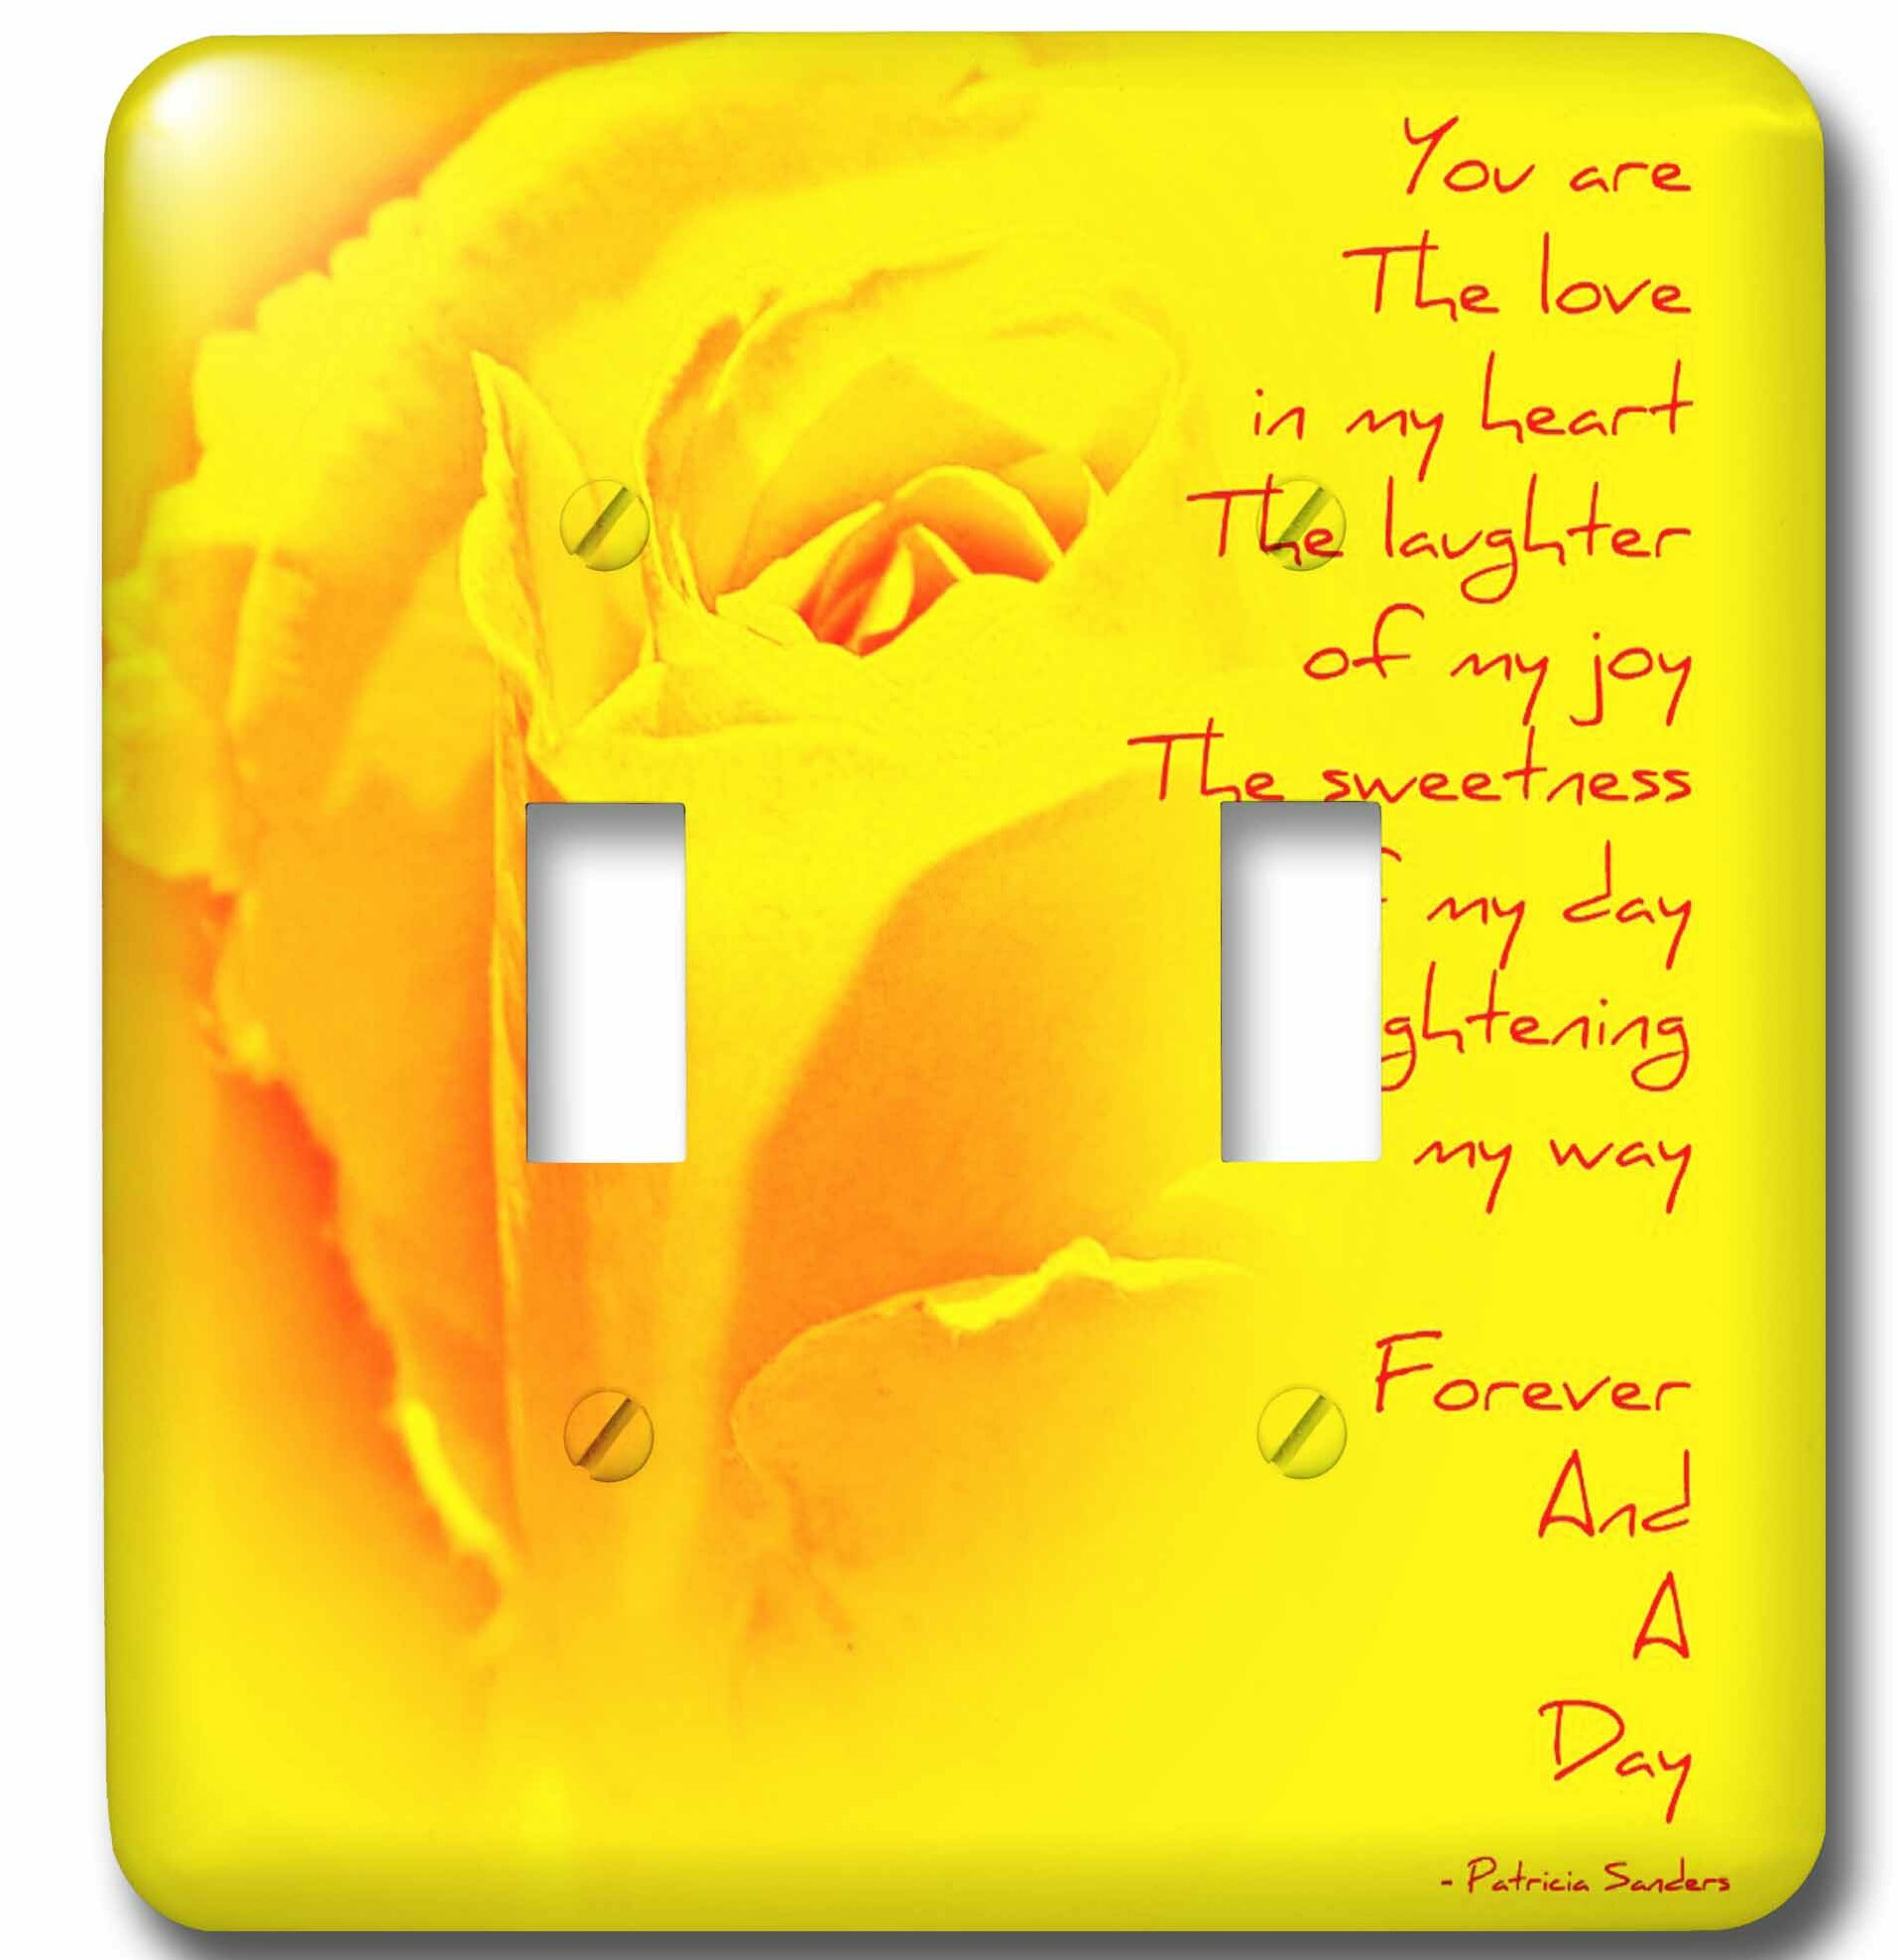 3drose Rose Forever And A Day Poem 2 Gang Toggle Light Switch Wall Plate Wayfair